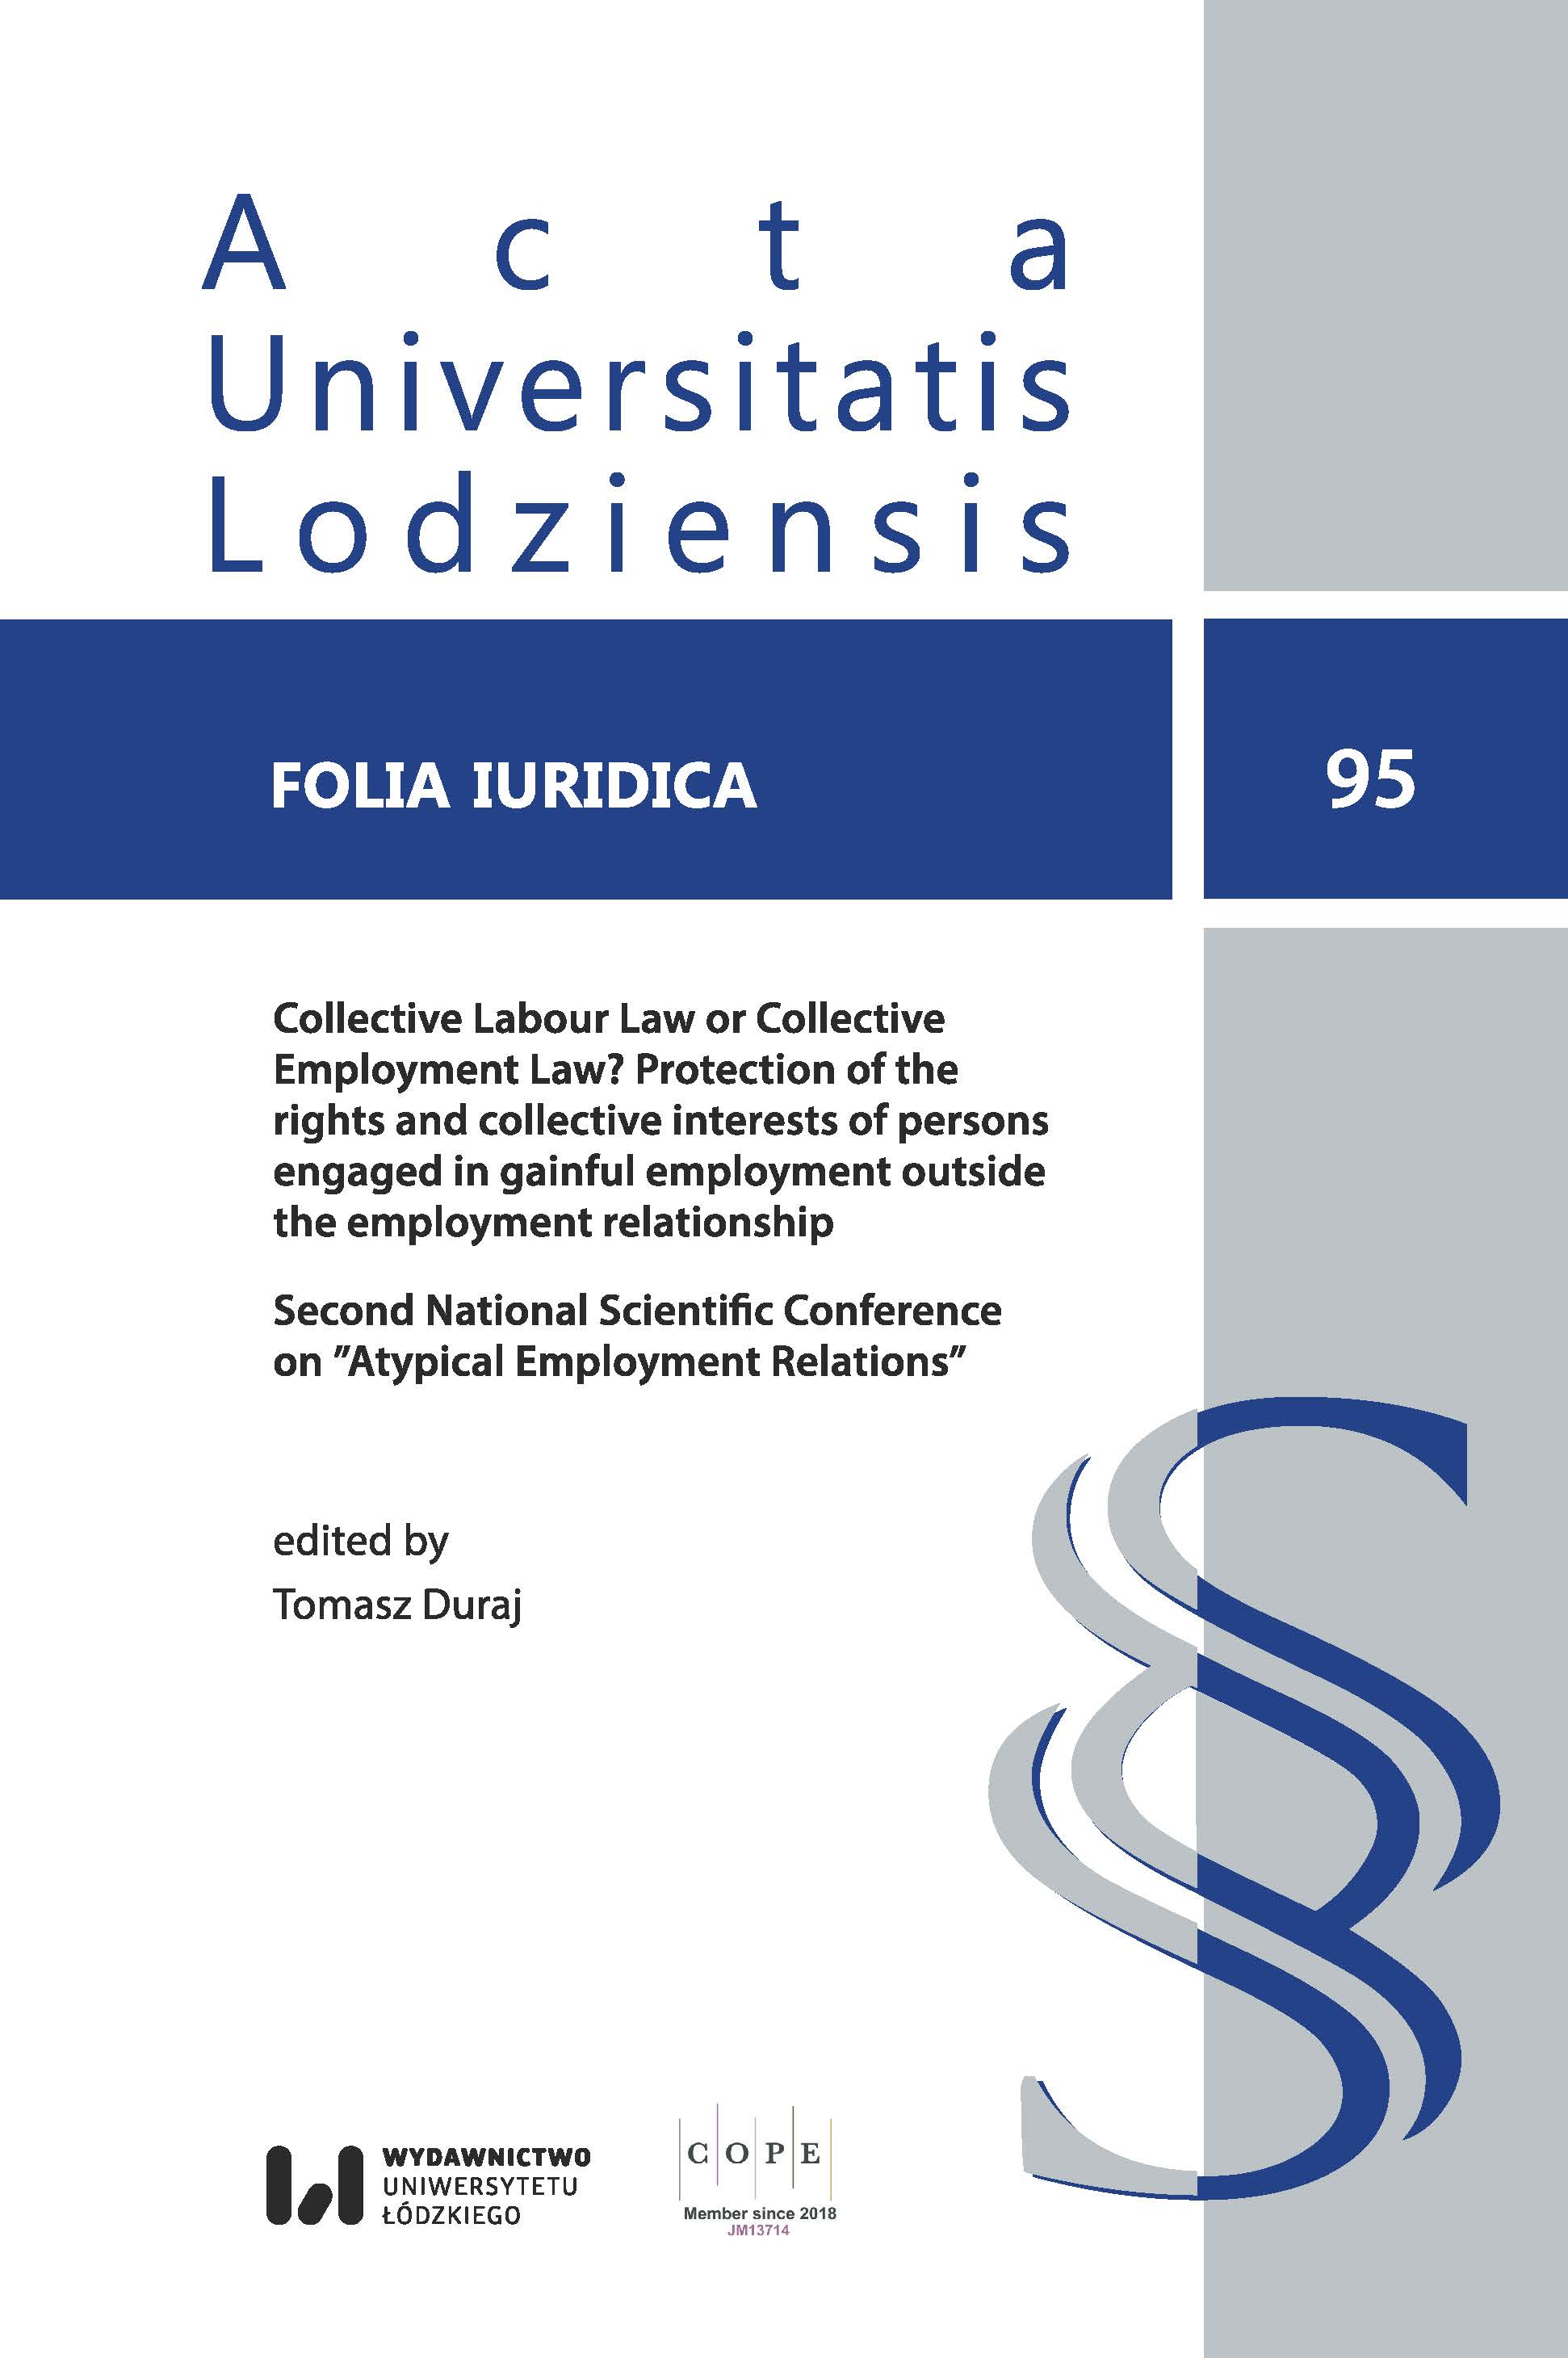 """View Vol. 95 (2021): Collective Labour Law or Collective Employment Law? Protection of the rights and collective interests of persons engaged in gainful employment outside the employment relationship. Second National Scientific Conference on """"Atypical Employment Relations"""""""